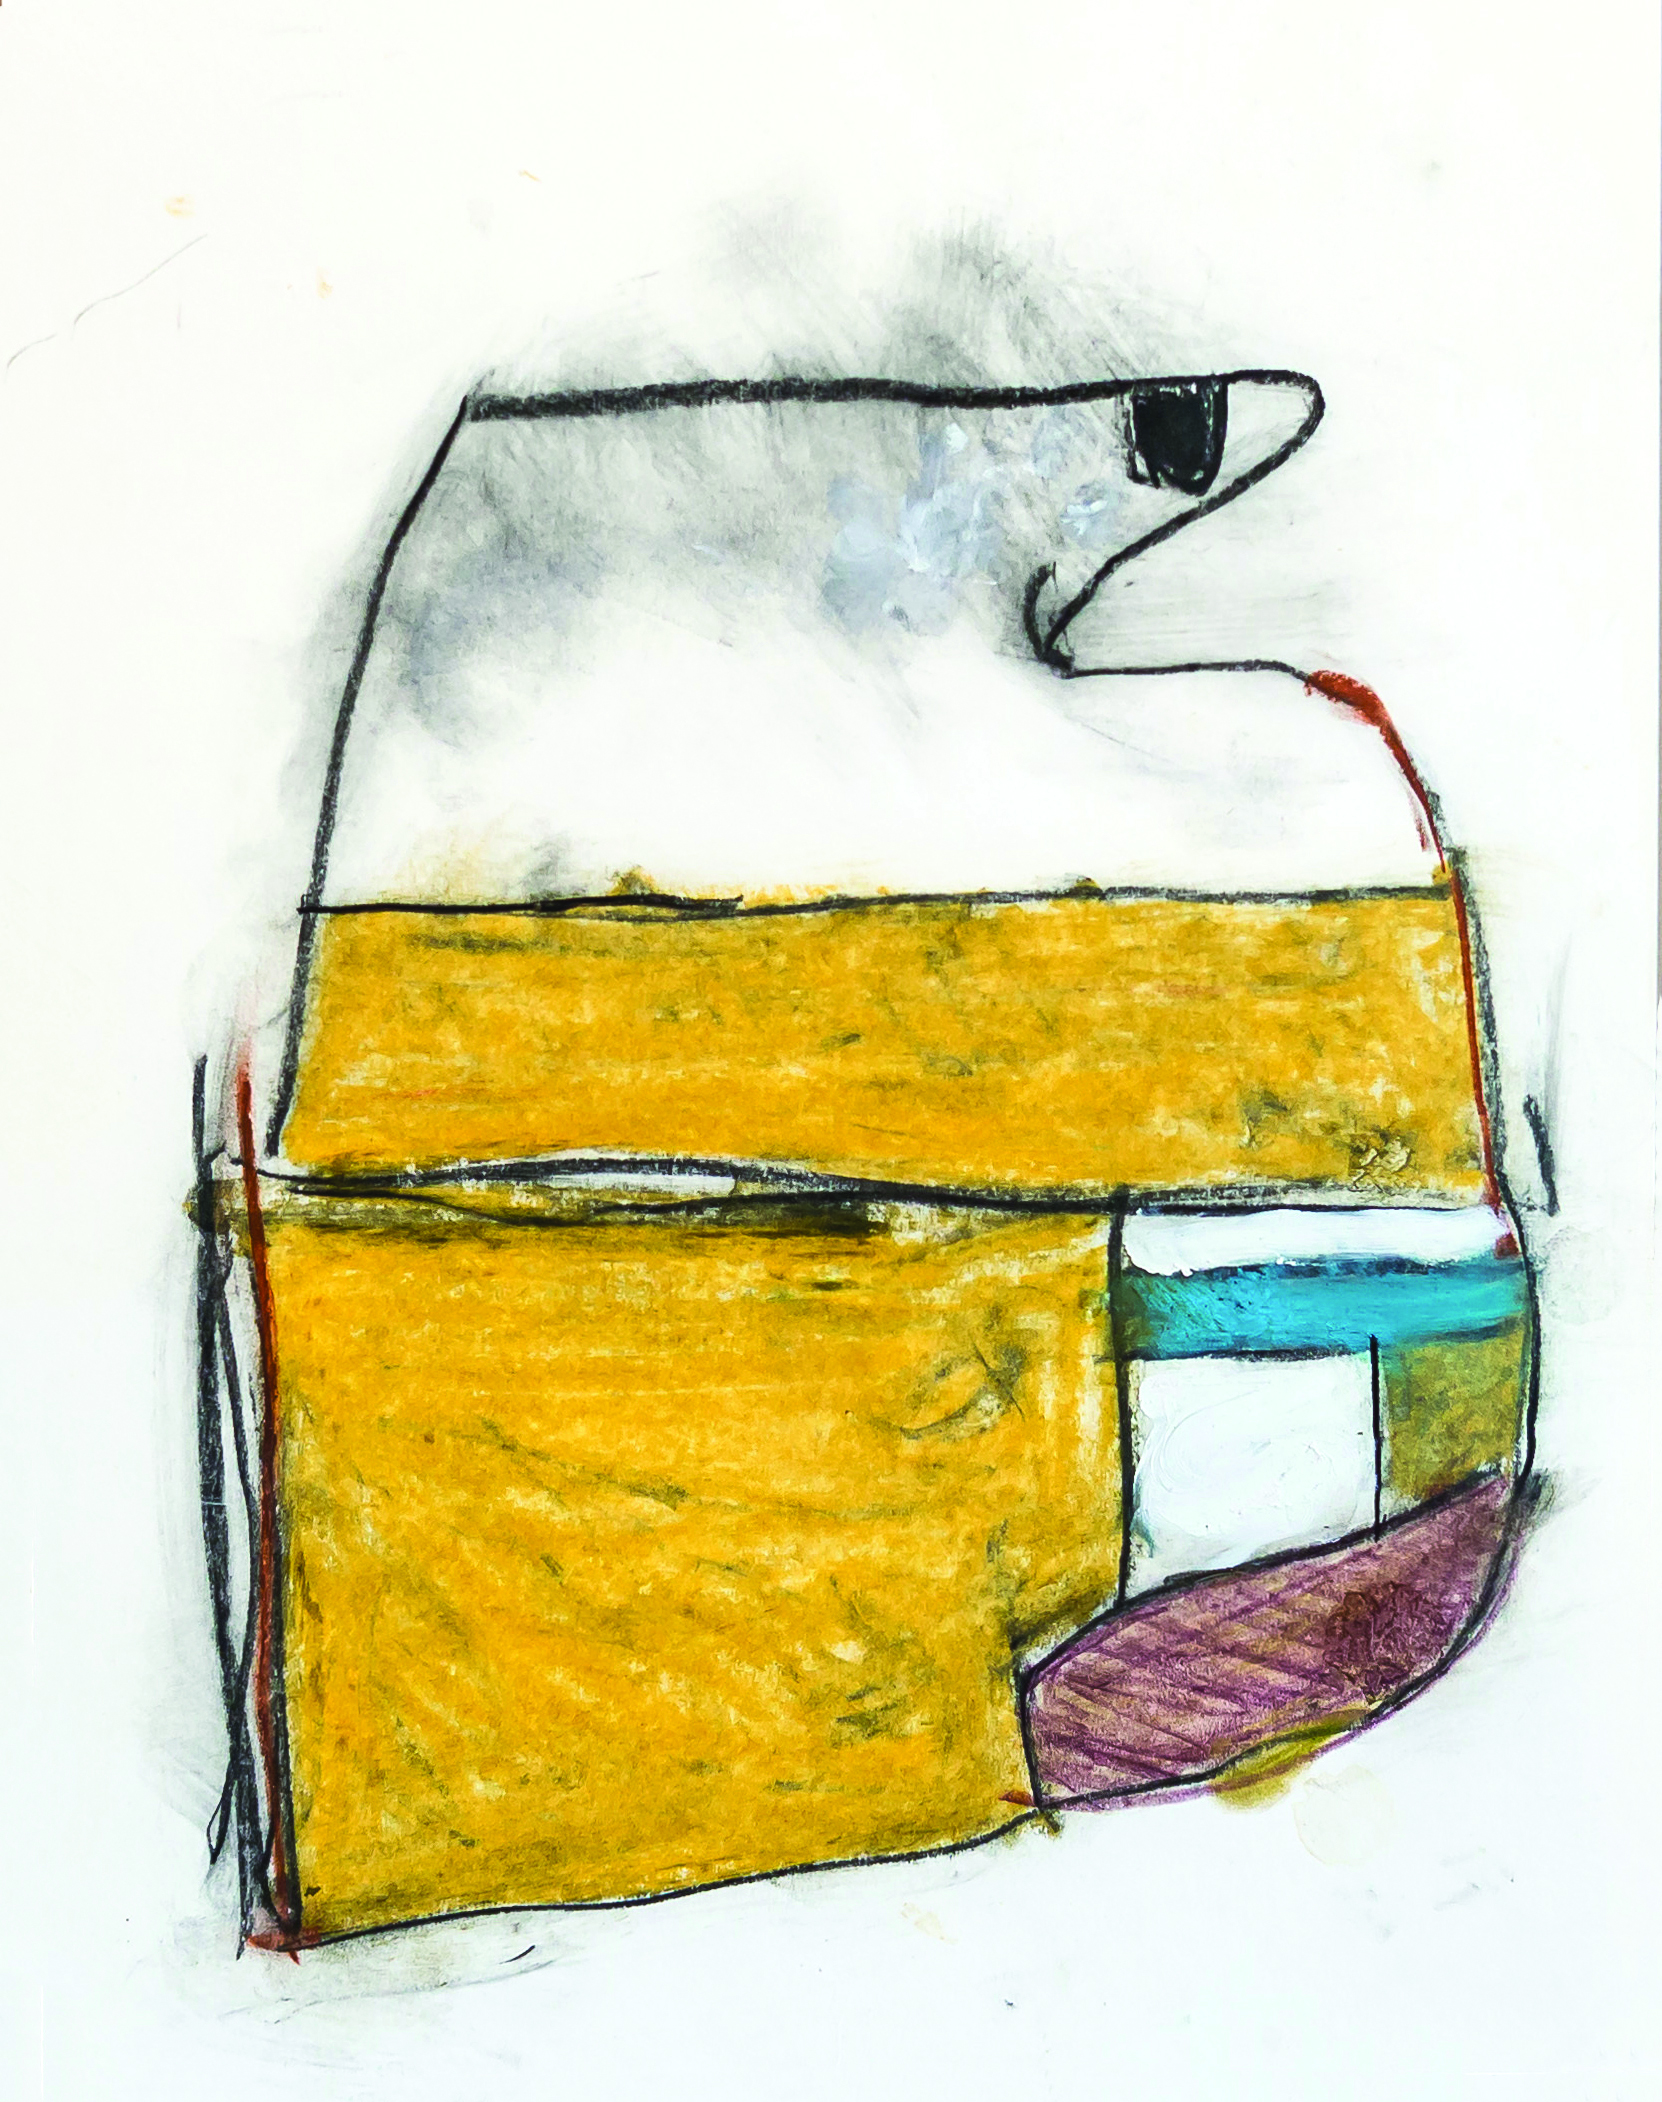 Untitled #2  mixed media on paper, 15x18